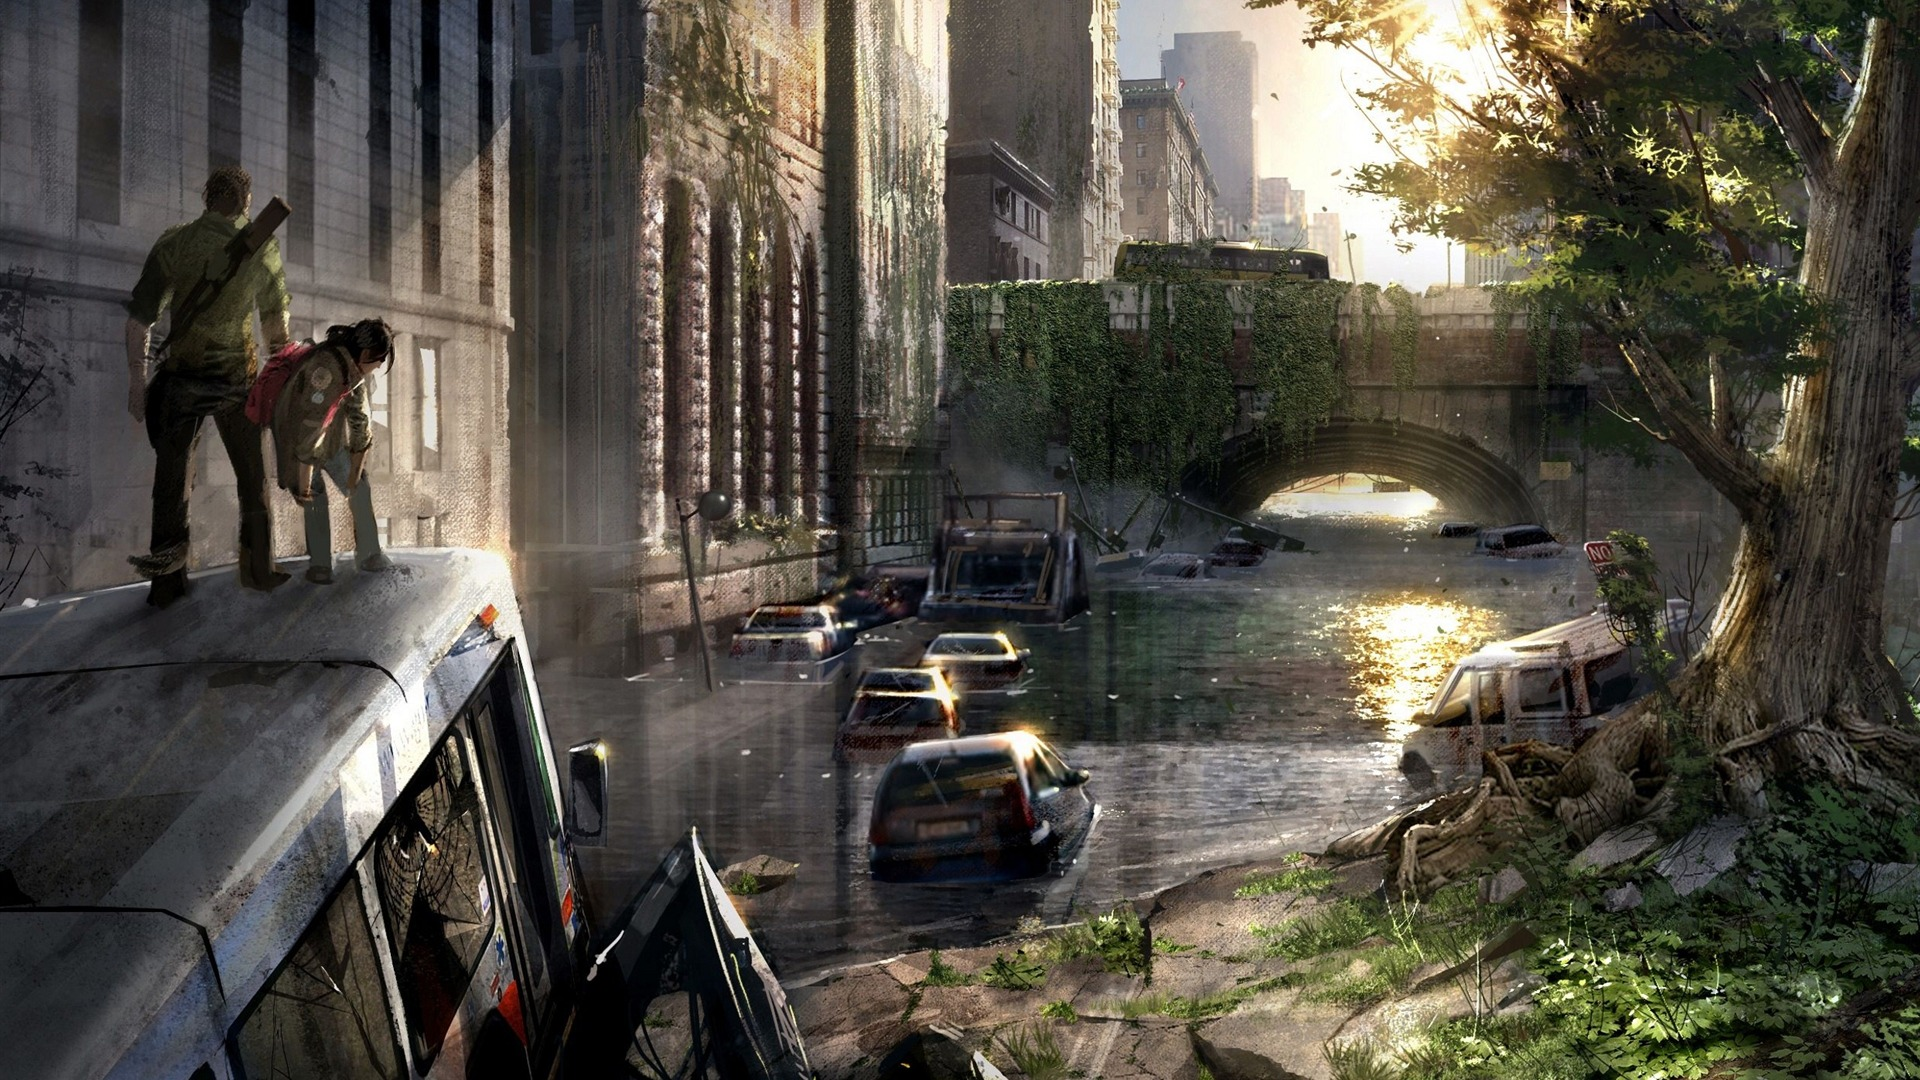 The Last Of Us Game Hd Wallpaper 07 Avance 10wallpapercom